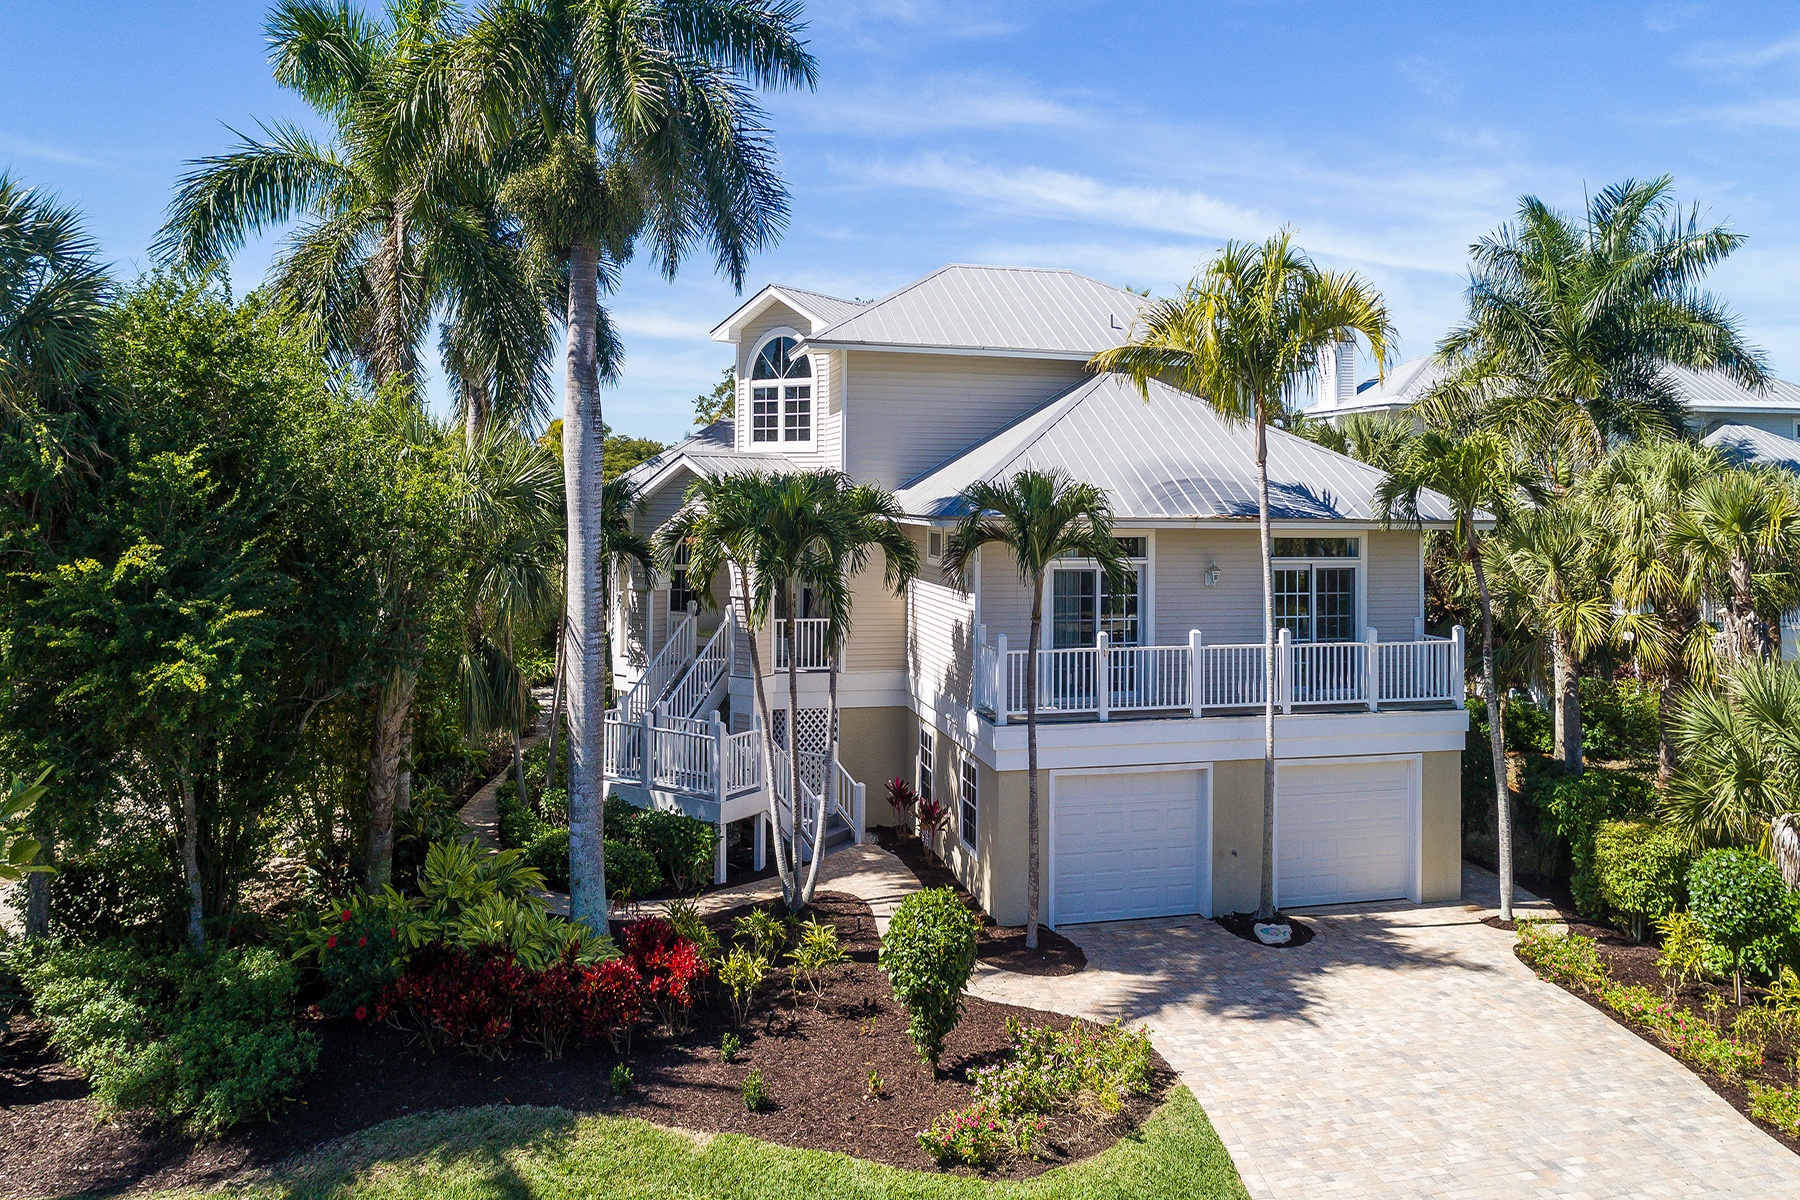 Single Family Homes for Sale at EASTWOOD LANDINGS AMENDED, EASTWOODLANDINGS AMENDED 911 Almas Ct Sanibel, Florida 33957 United States